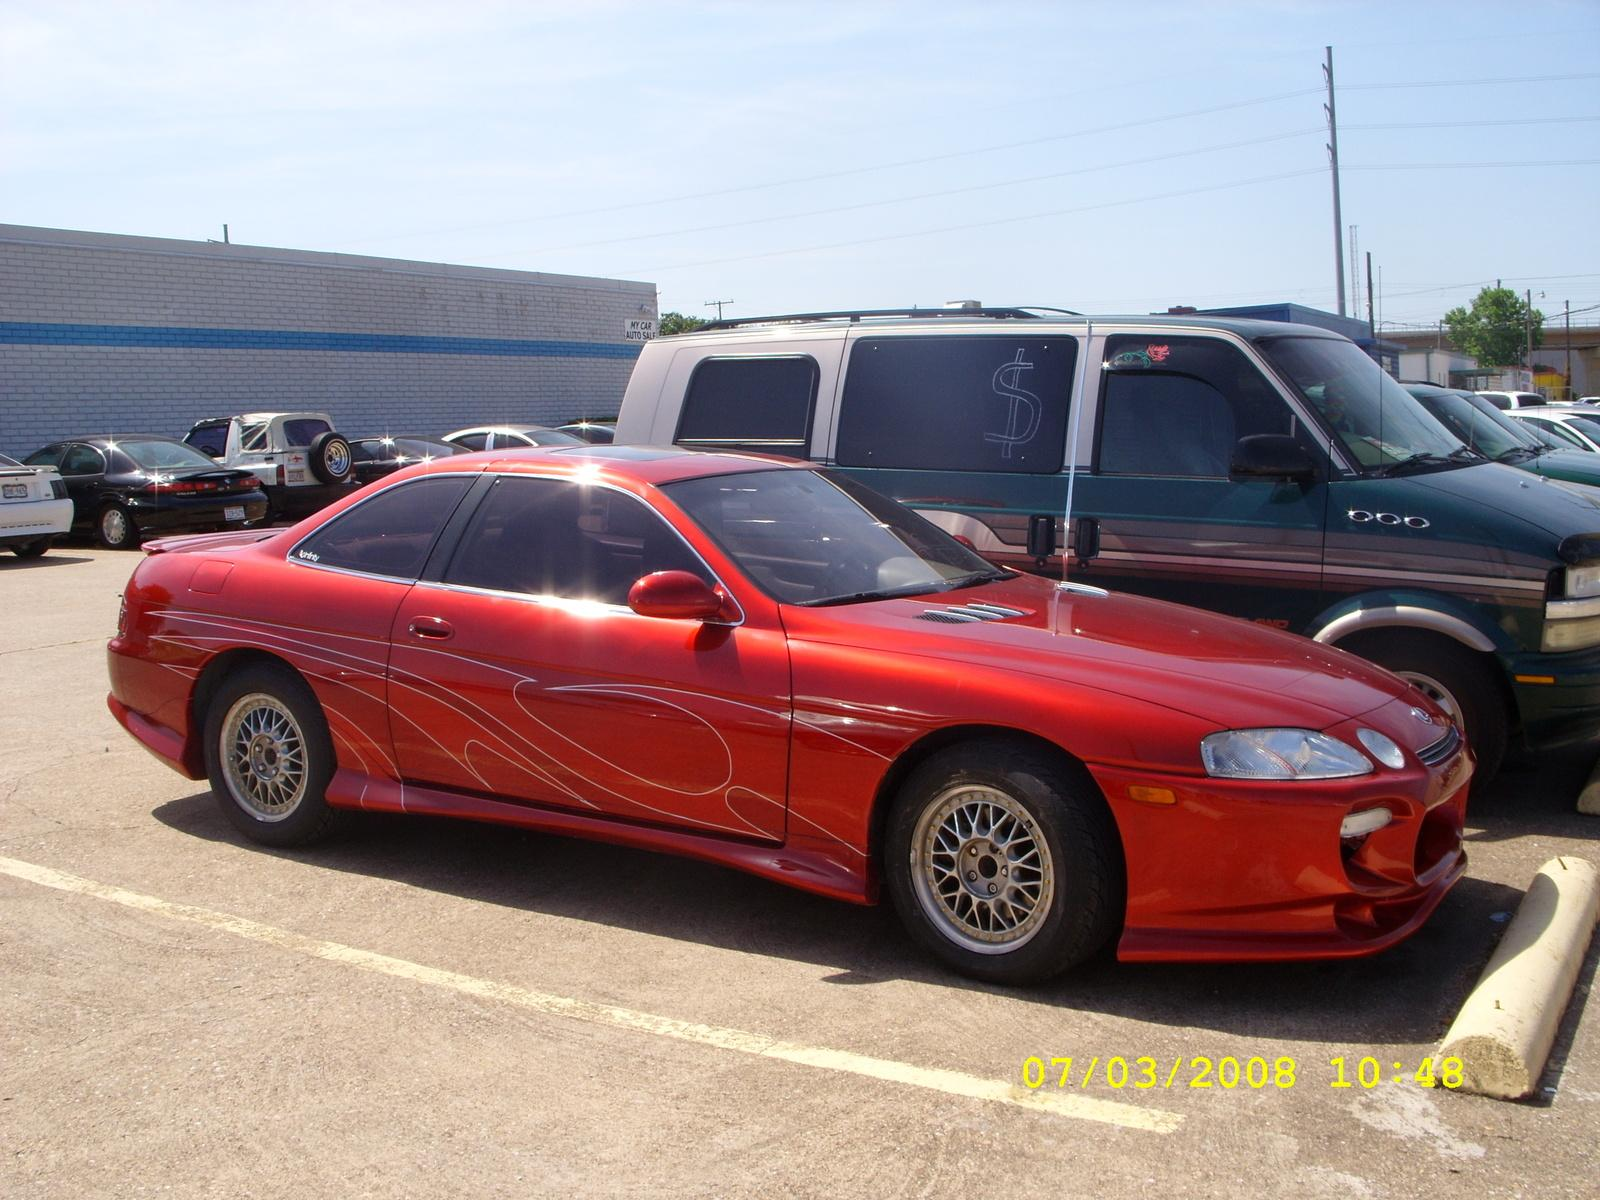 hight resolution of 800 1024 1280 1600 origin 1994 lexus sc 400